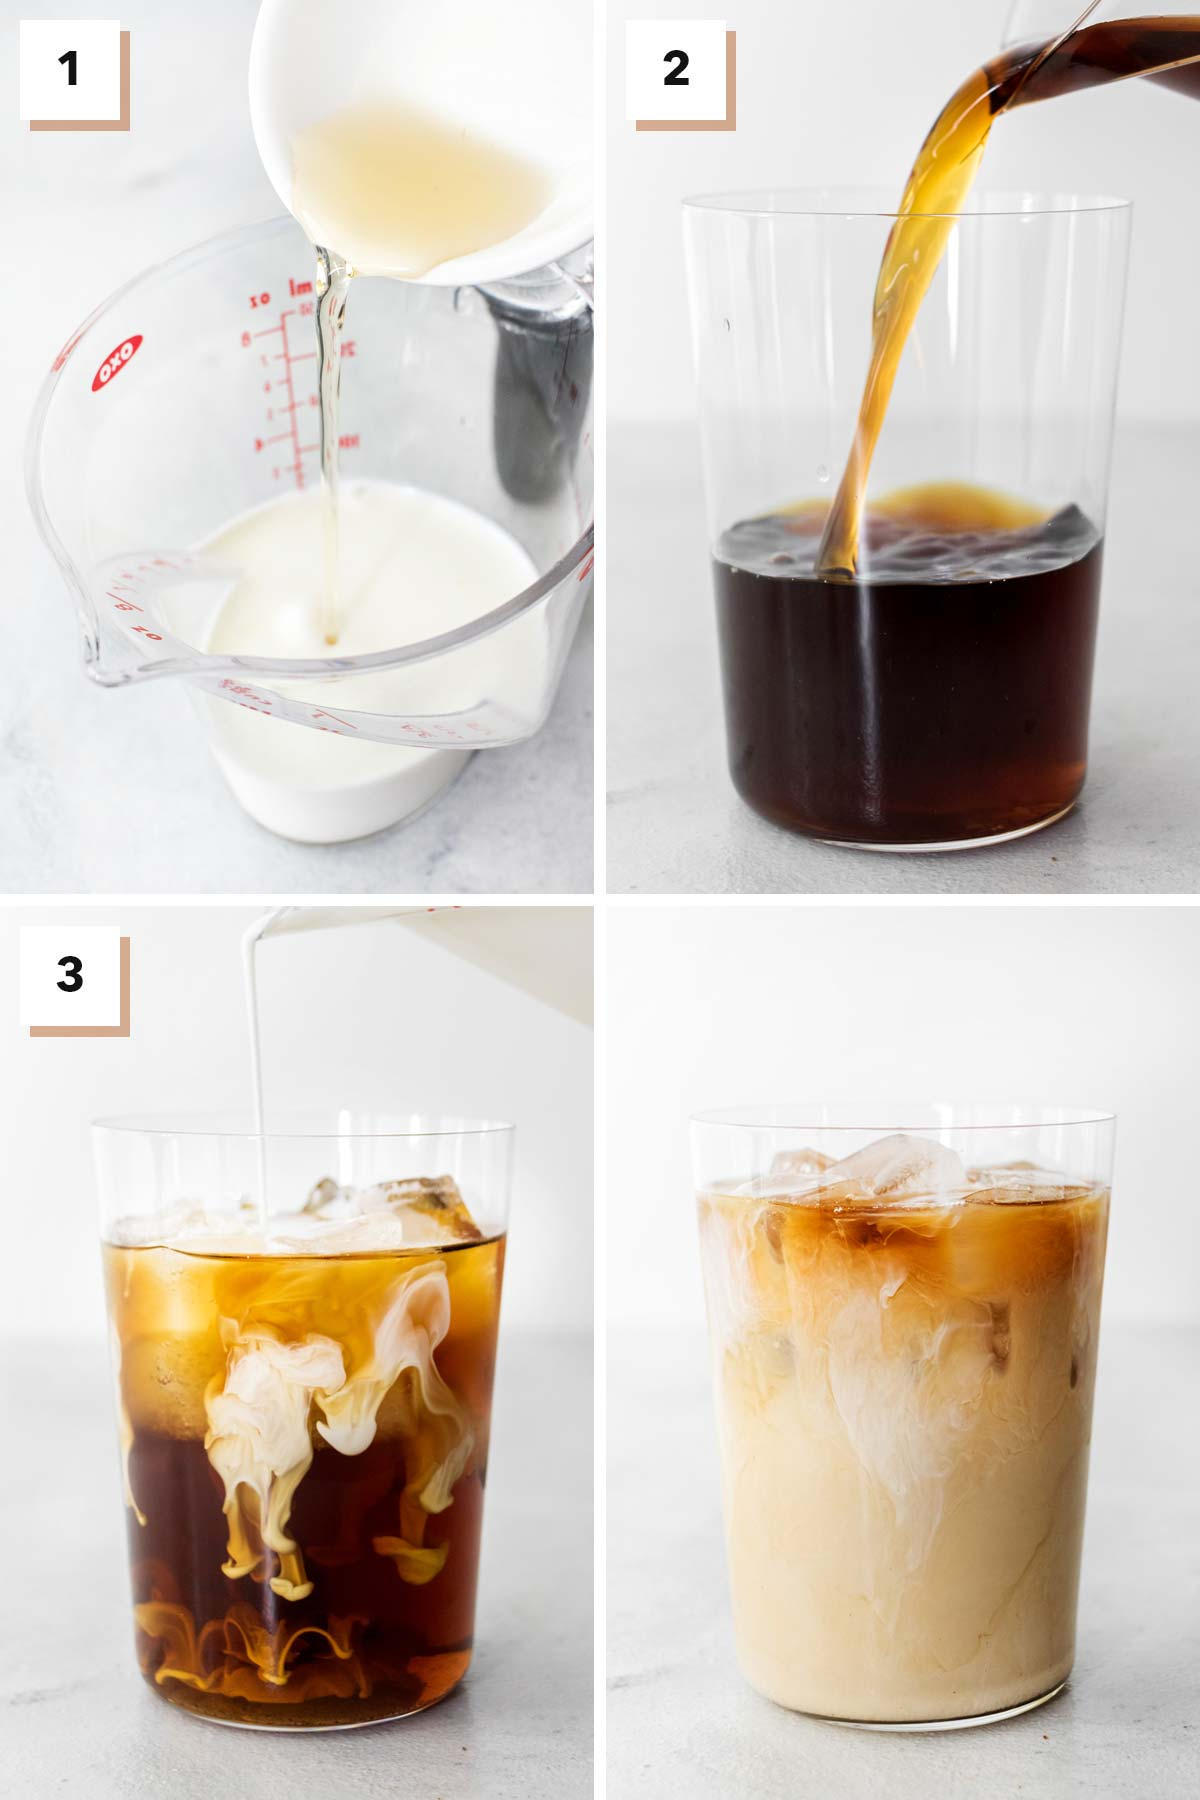 Steps to make Starbucks Vanilla Sweet Cream Cold Brew Copycat at home.